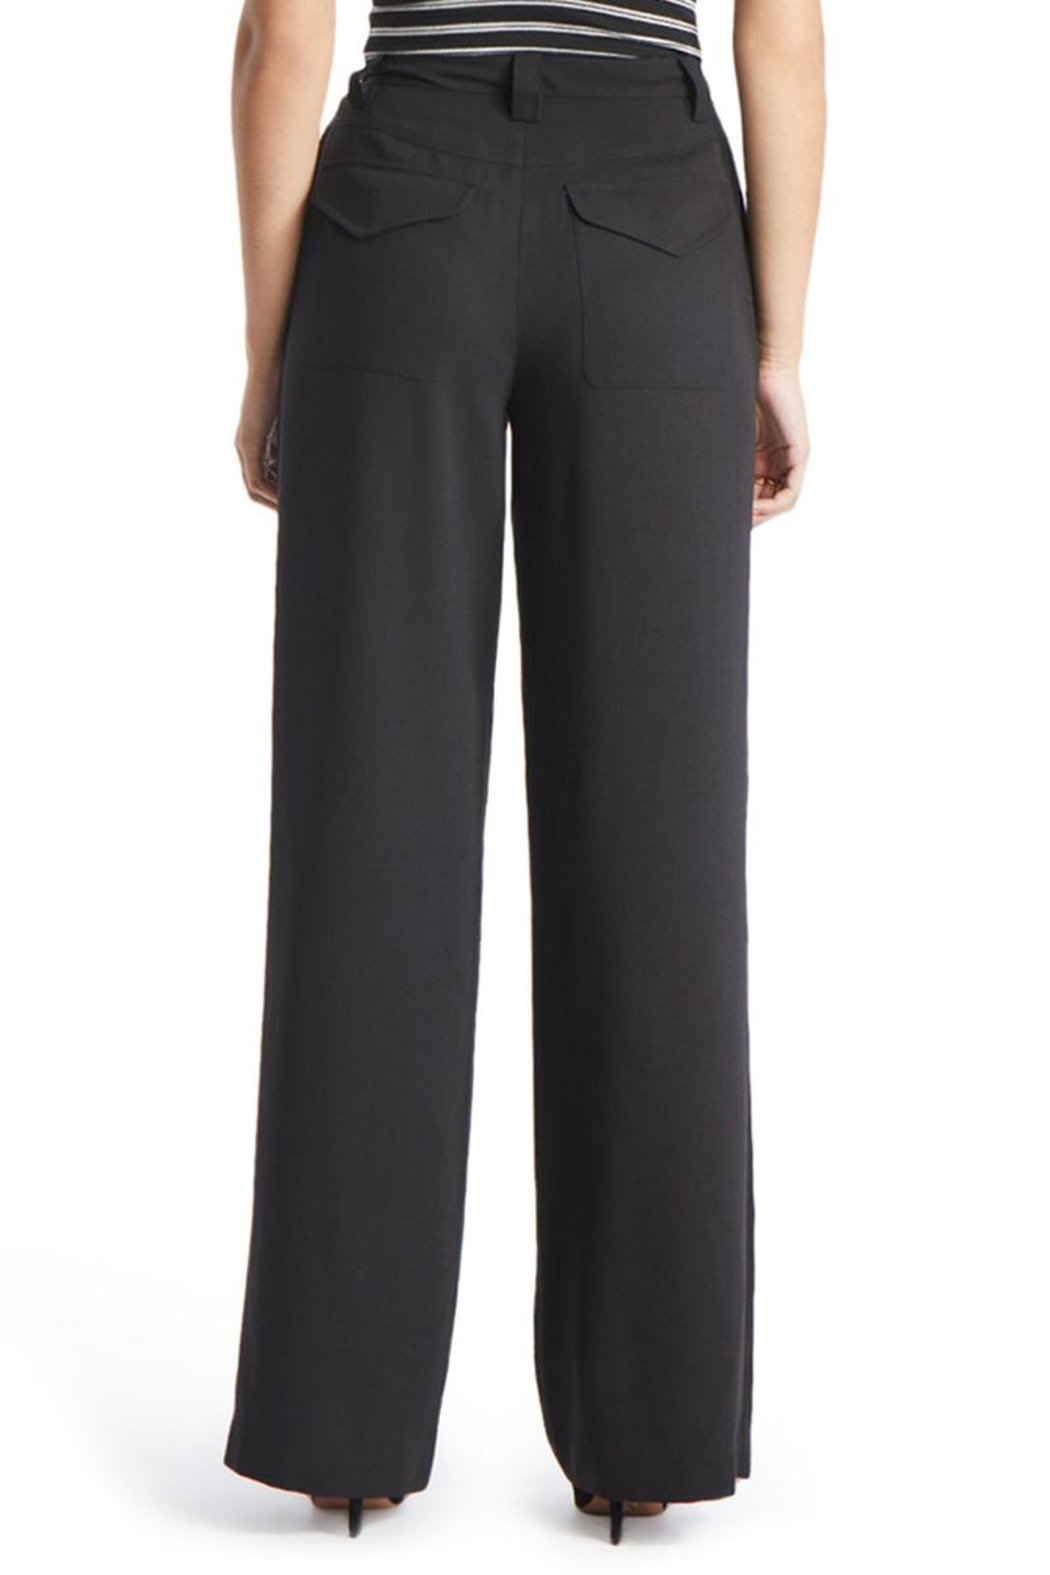 TAGS Wide Legged Trousers - Side Cropped Image